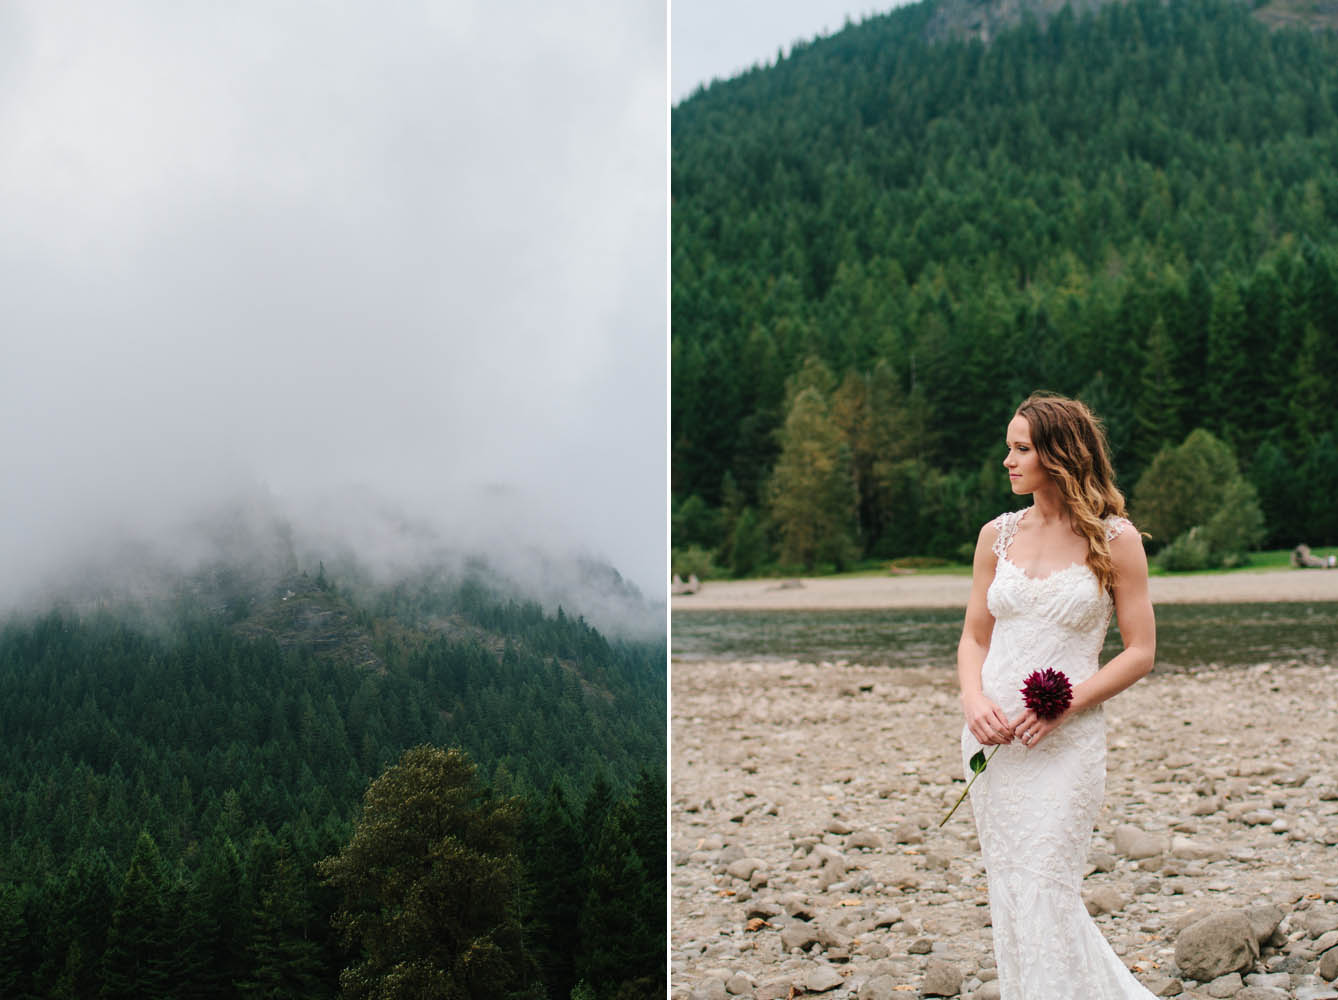 Seattle mountain wedding, elopement in washington state, northwest inspired, jess hunter photography, jessica hunter, woodland wedding photographer,